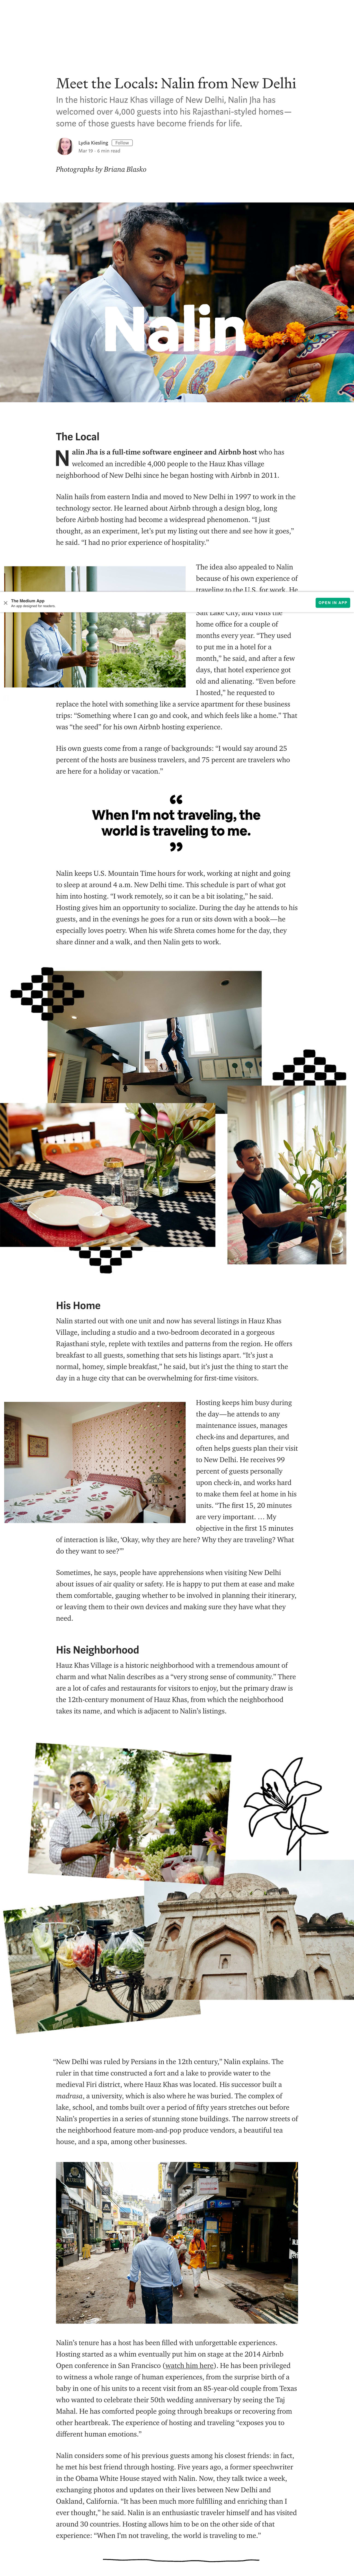 Airbnb Magazine - Meet the Locals